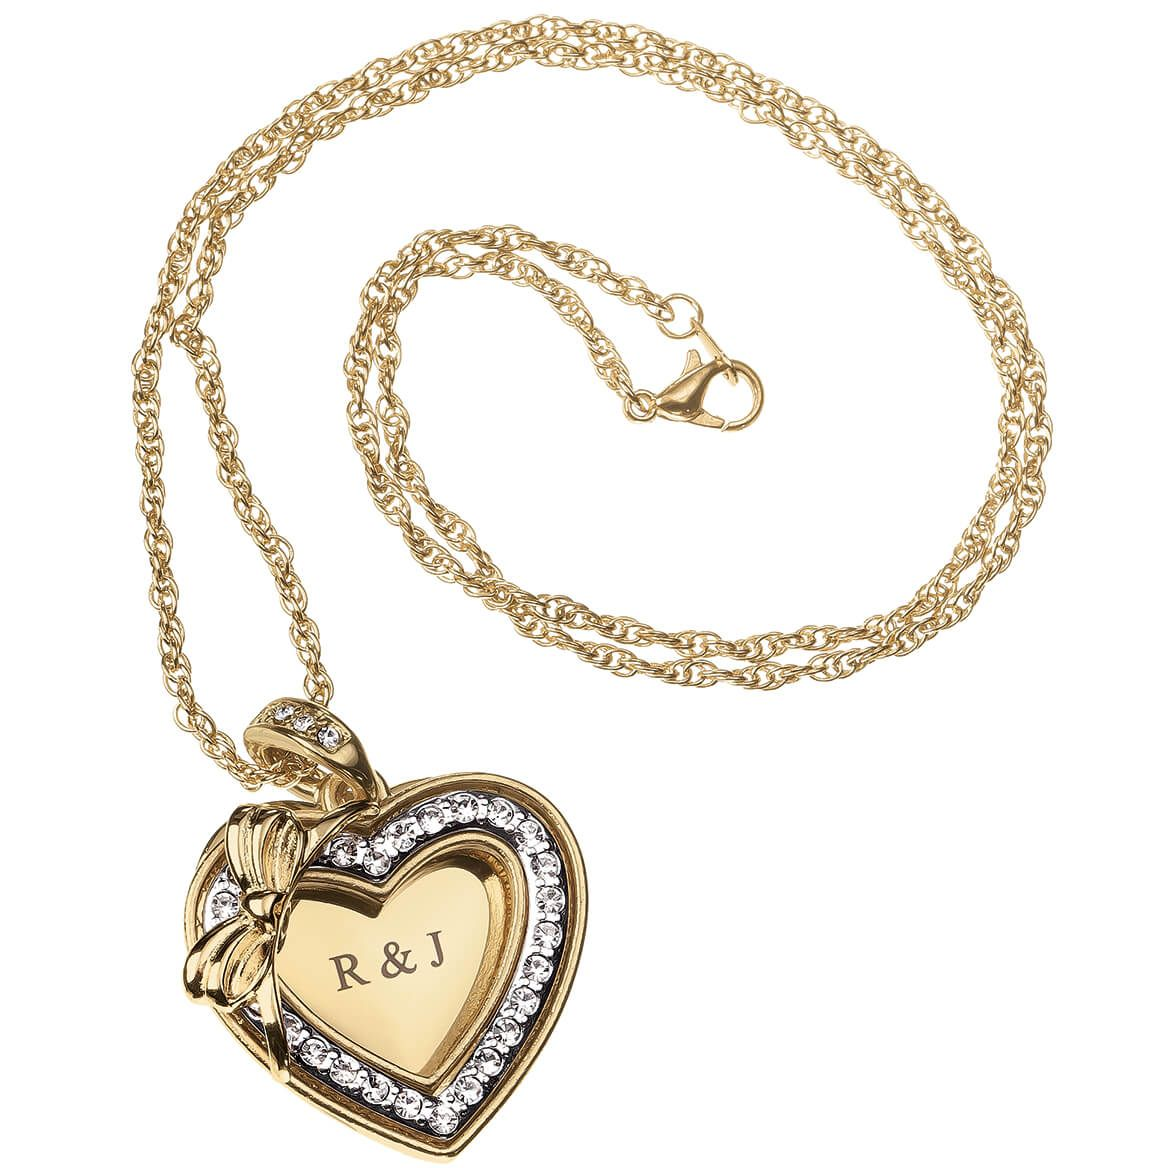 Personalized Open Crystal Heart and Bow Pendant-369362